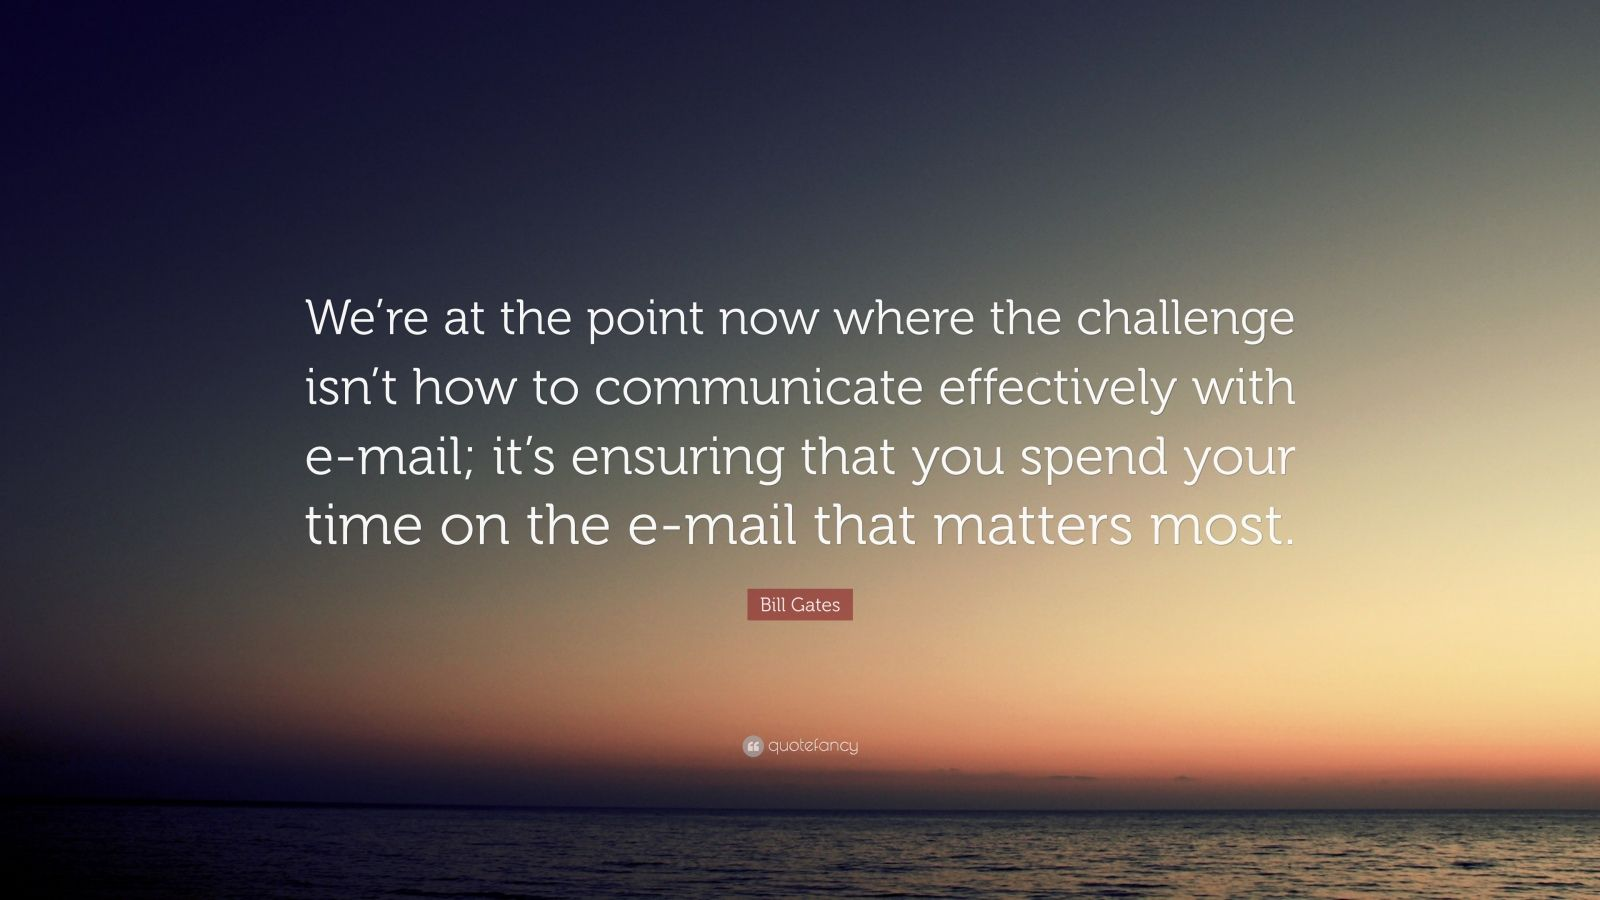 """Bill Gates Quote: """"We're at the point now where the challenge isn't how to communicate effectively with e-mail; it's ensuring that you spend your time on the e-mail that matters most."""""""